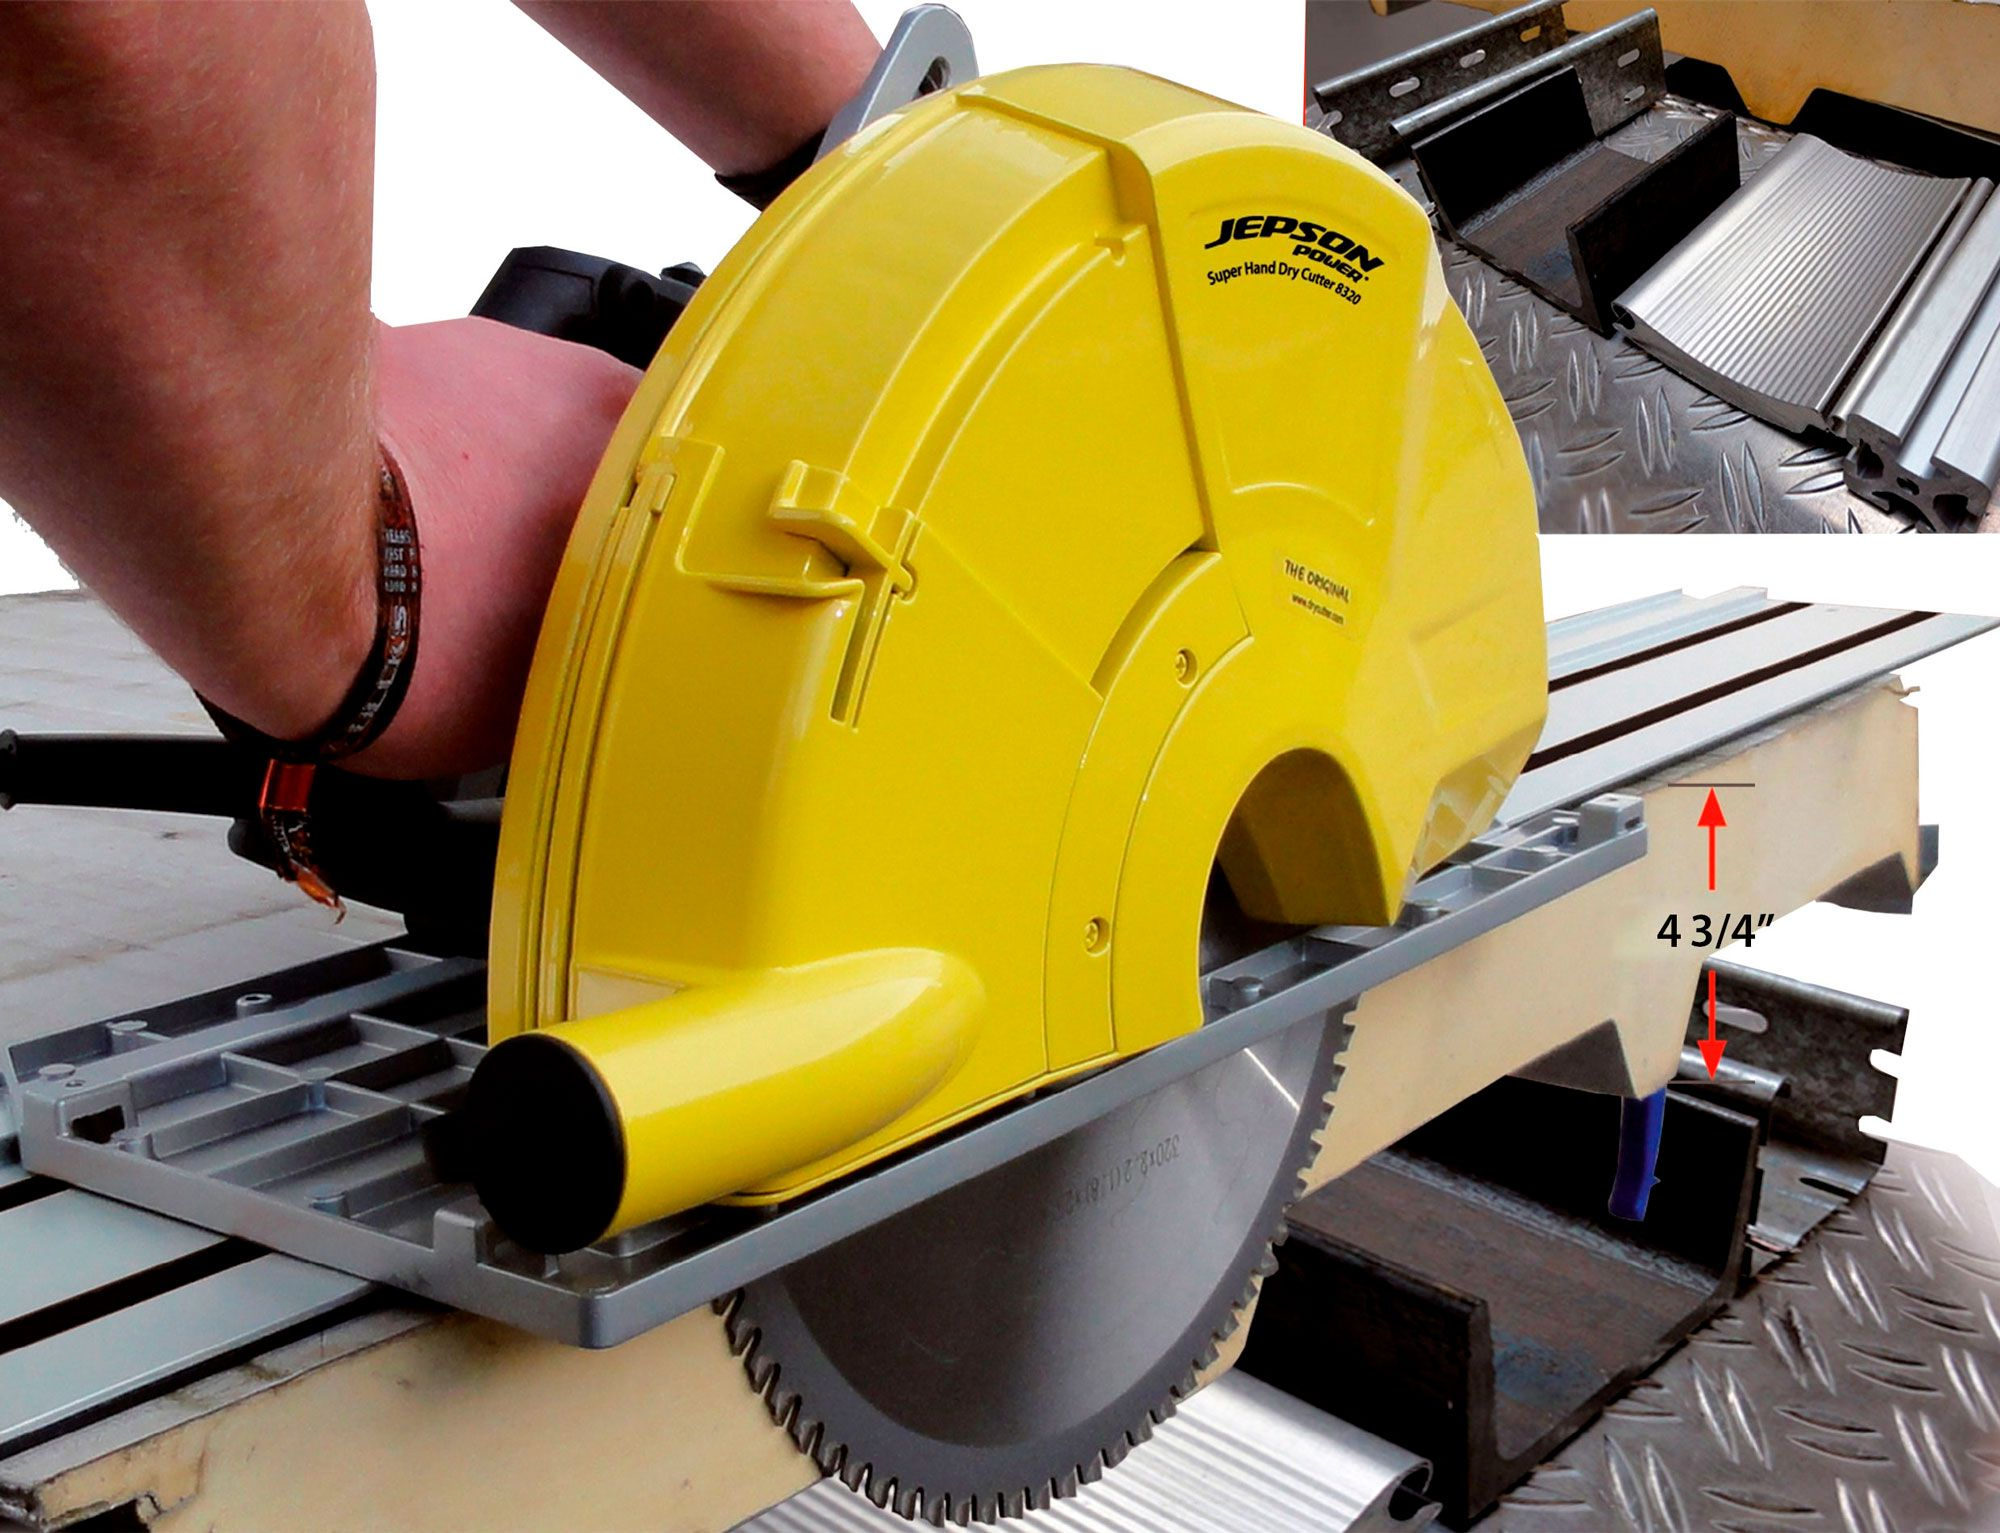 Super Hand Dry Cutter 8320 with guide rail cutting sandwich panel